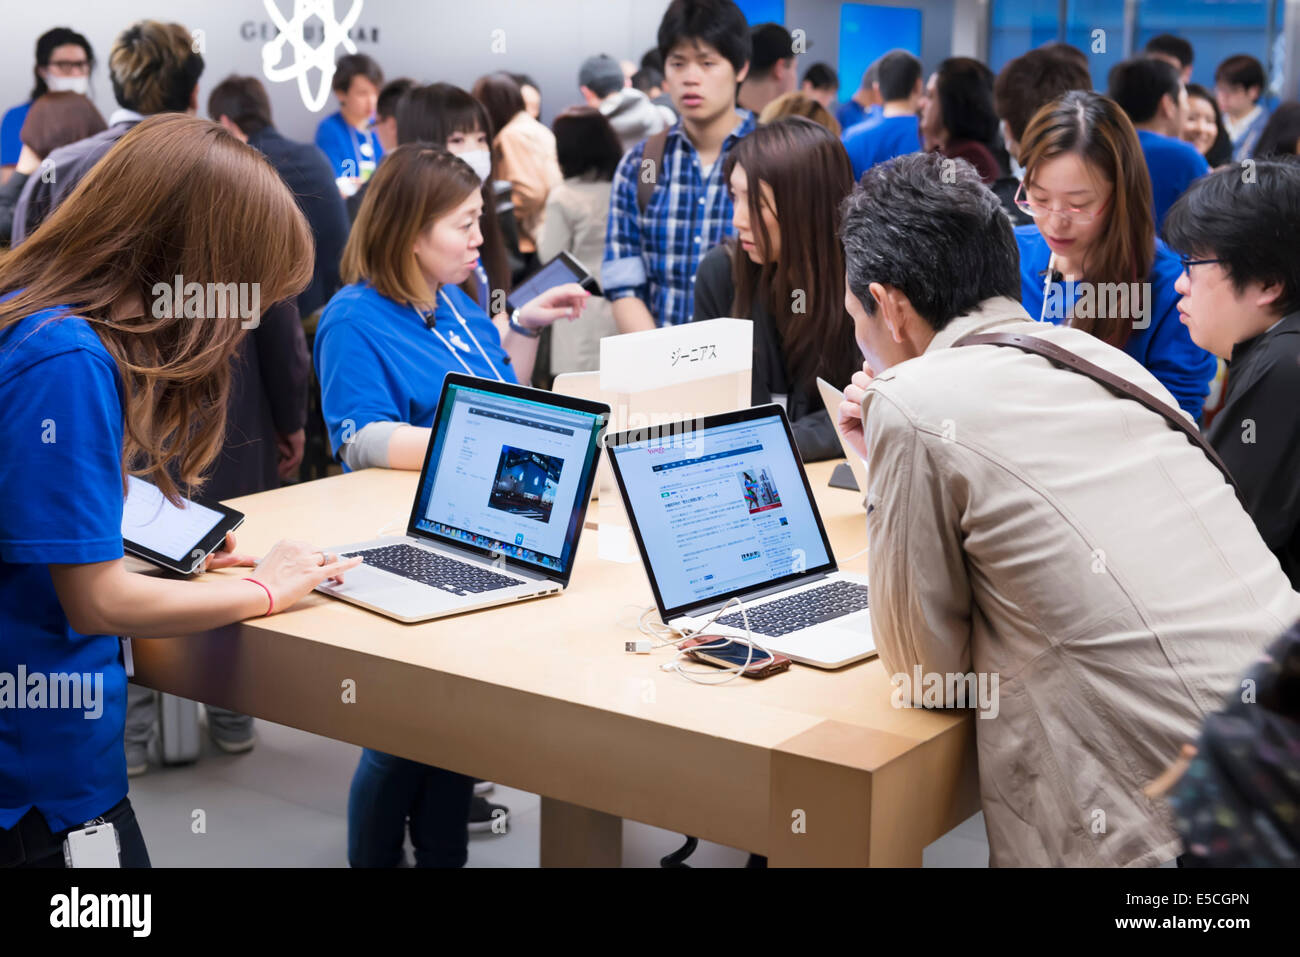 People at Apple Genius Bar technical support centre of a retail store in Ginza, Tokyo, Japan 2014 - Stock Image